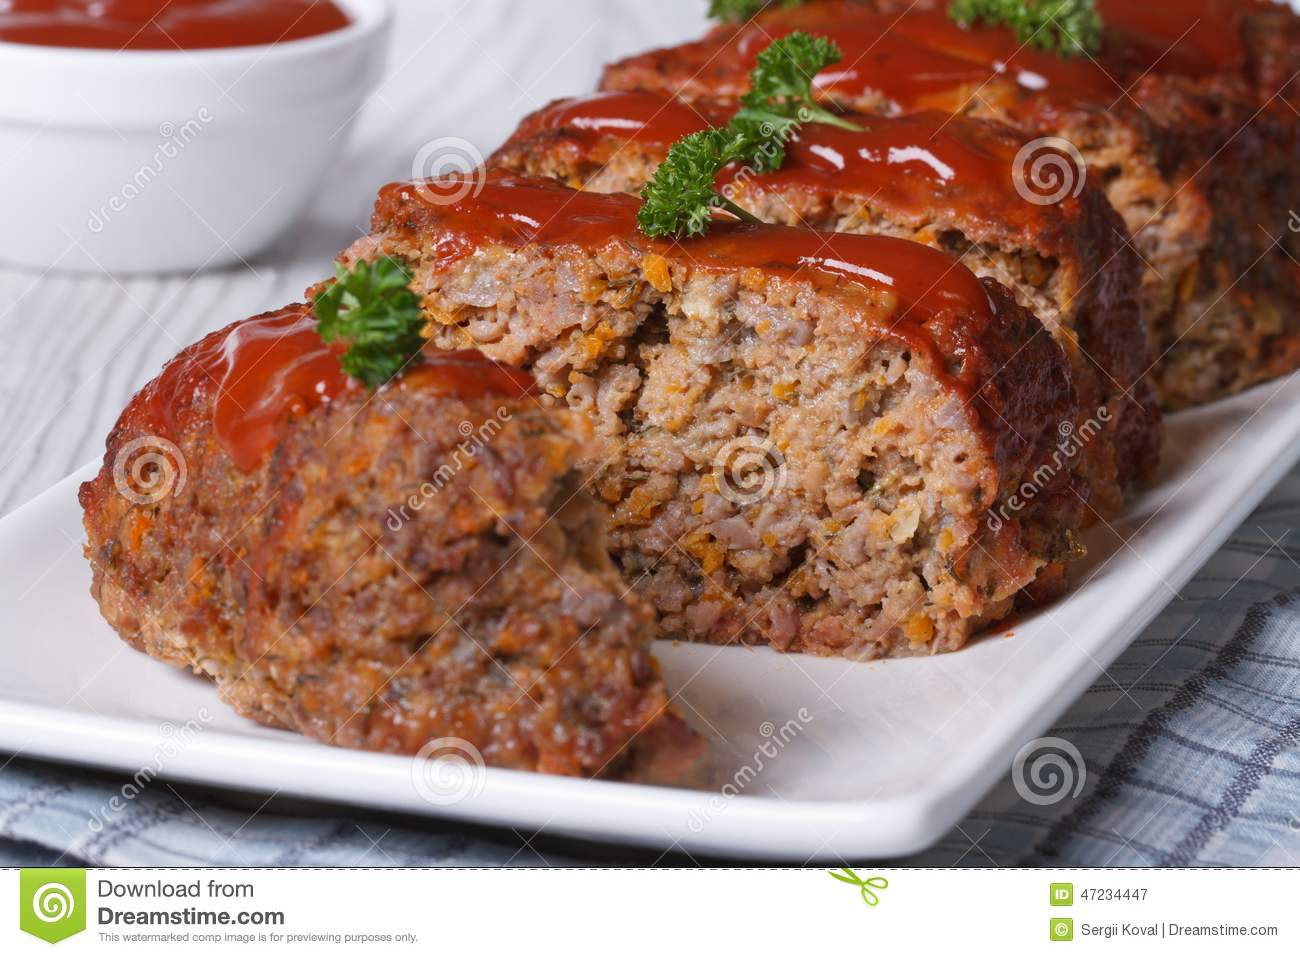 Christmas Meatloaf.Sliced Meatloaf With Ketchup And Parsley Horizontal Stock